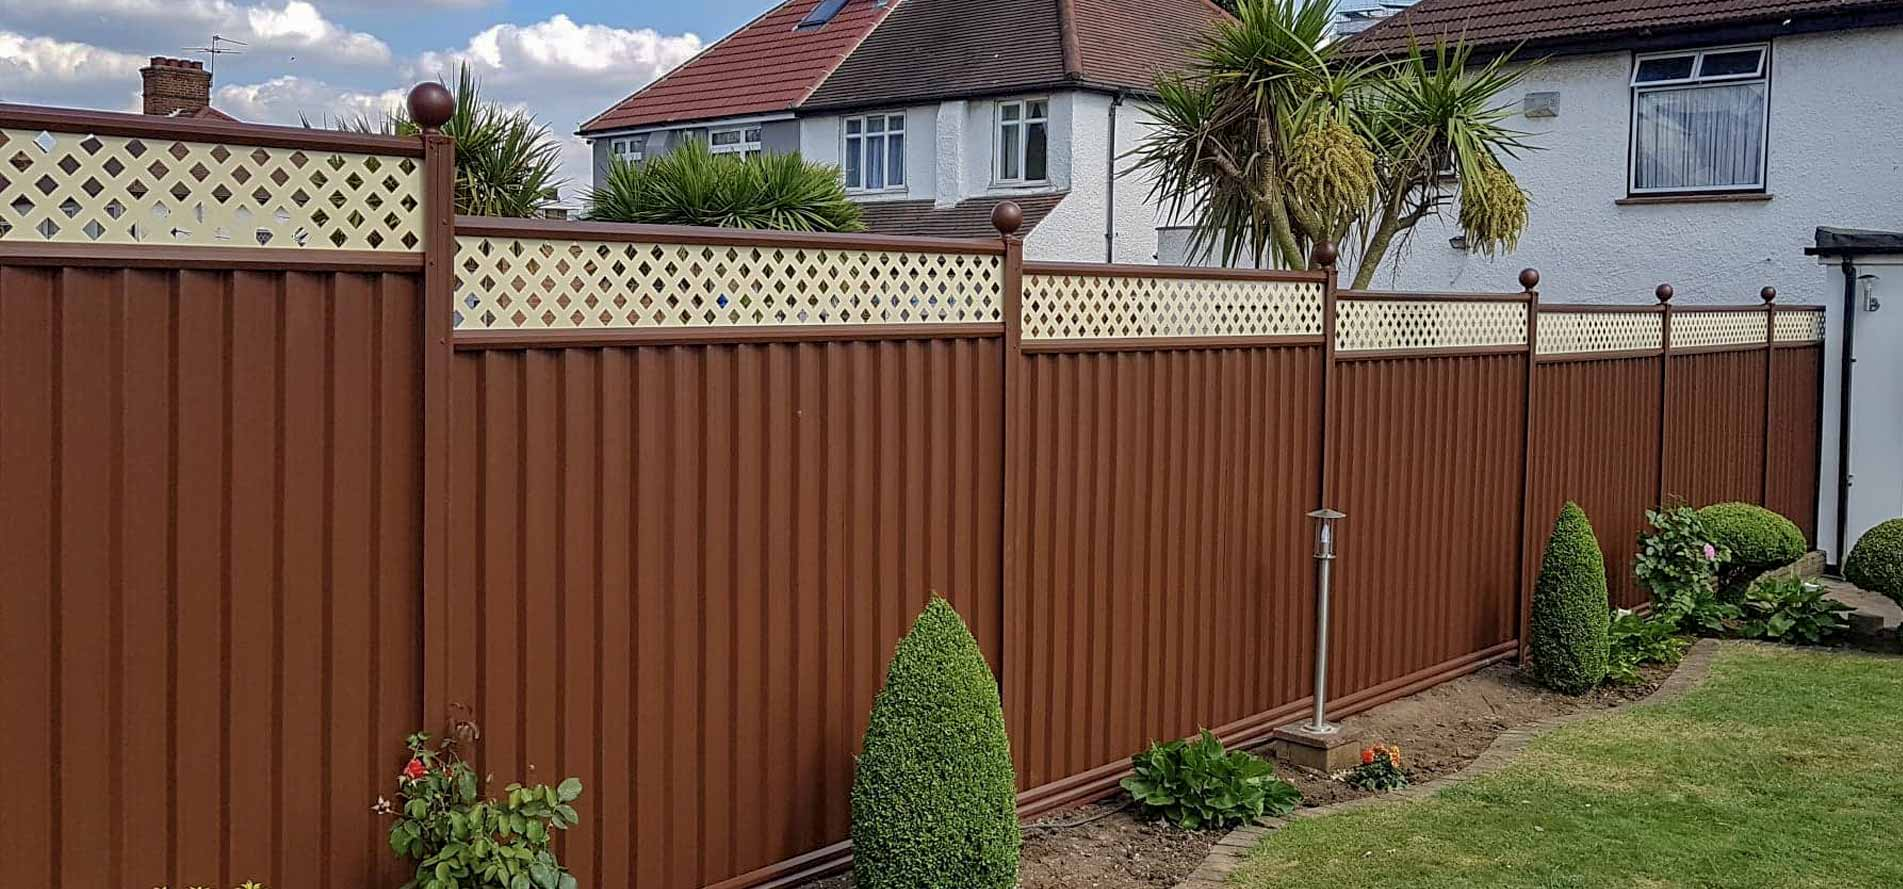 Metal garden fencing in Mildenhall